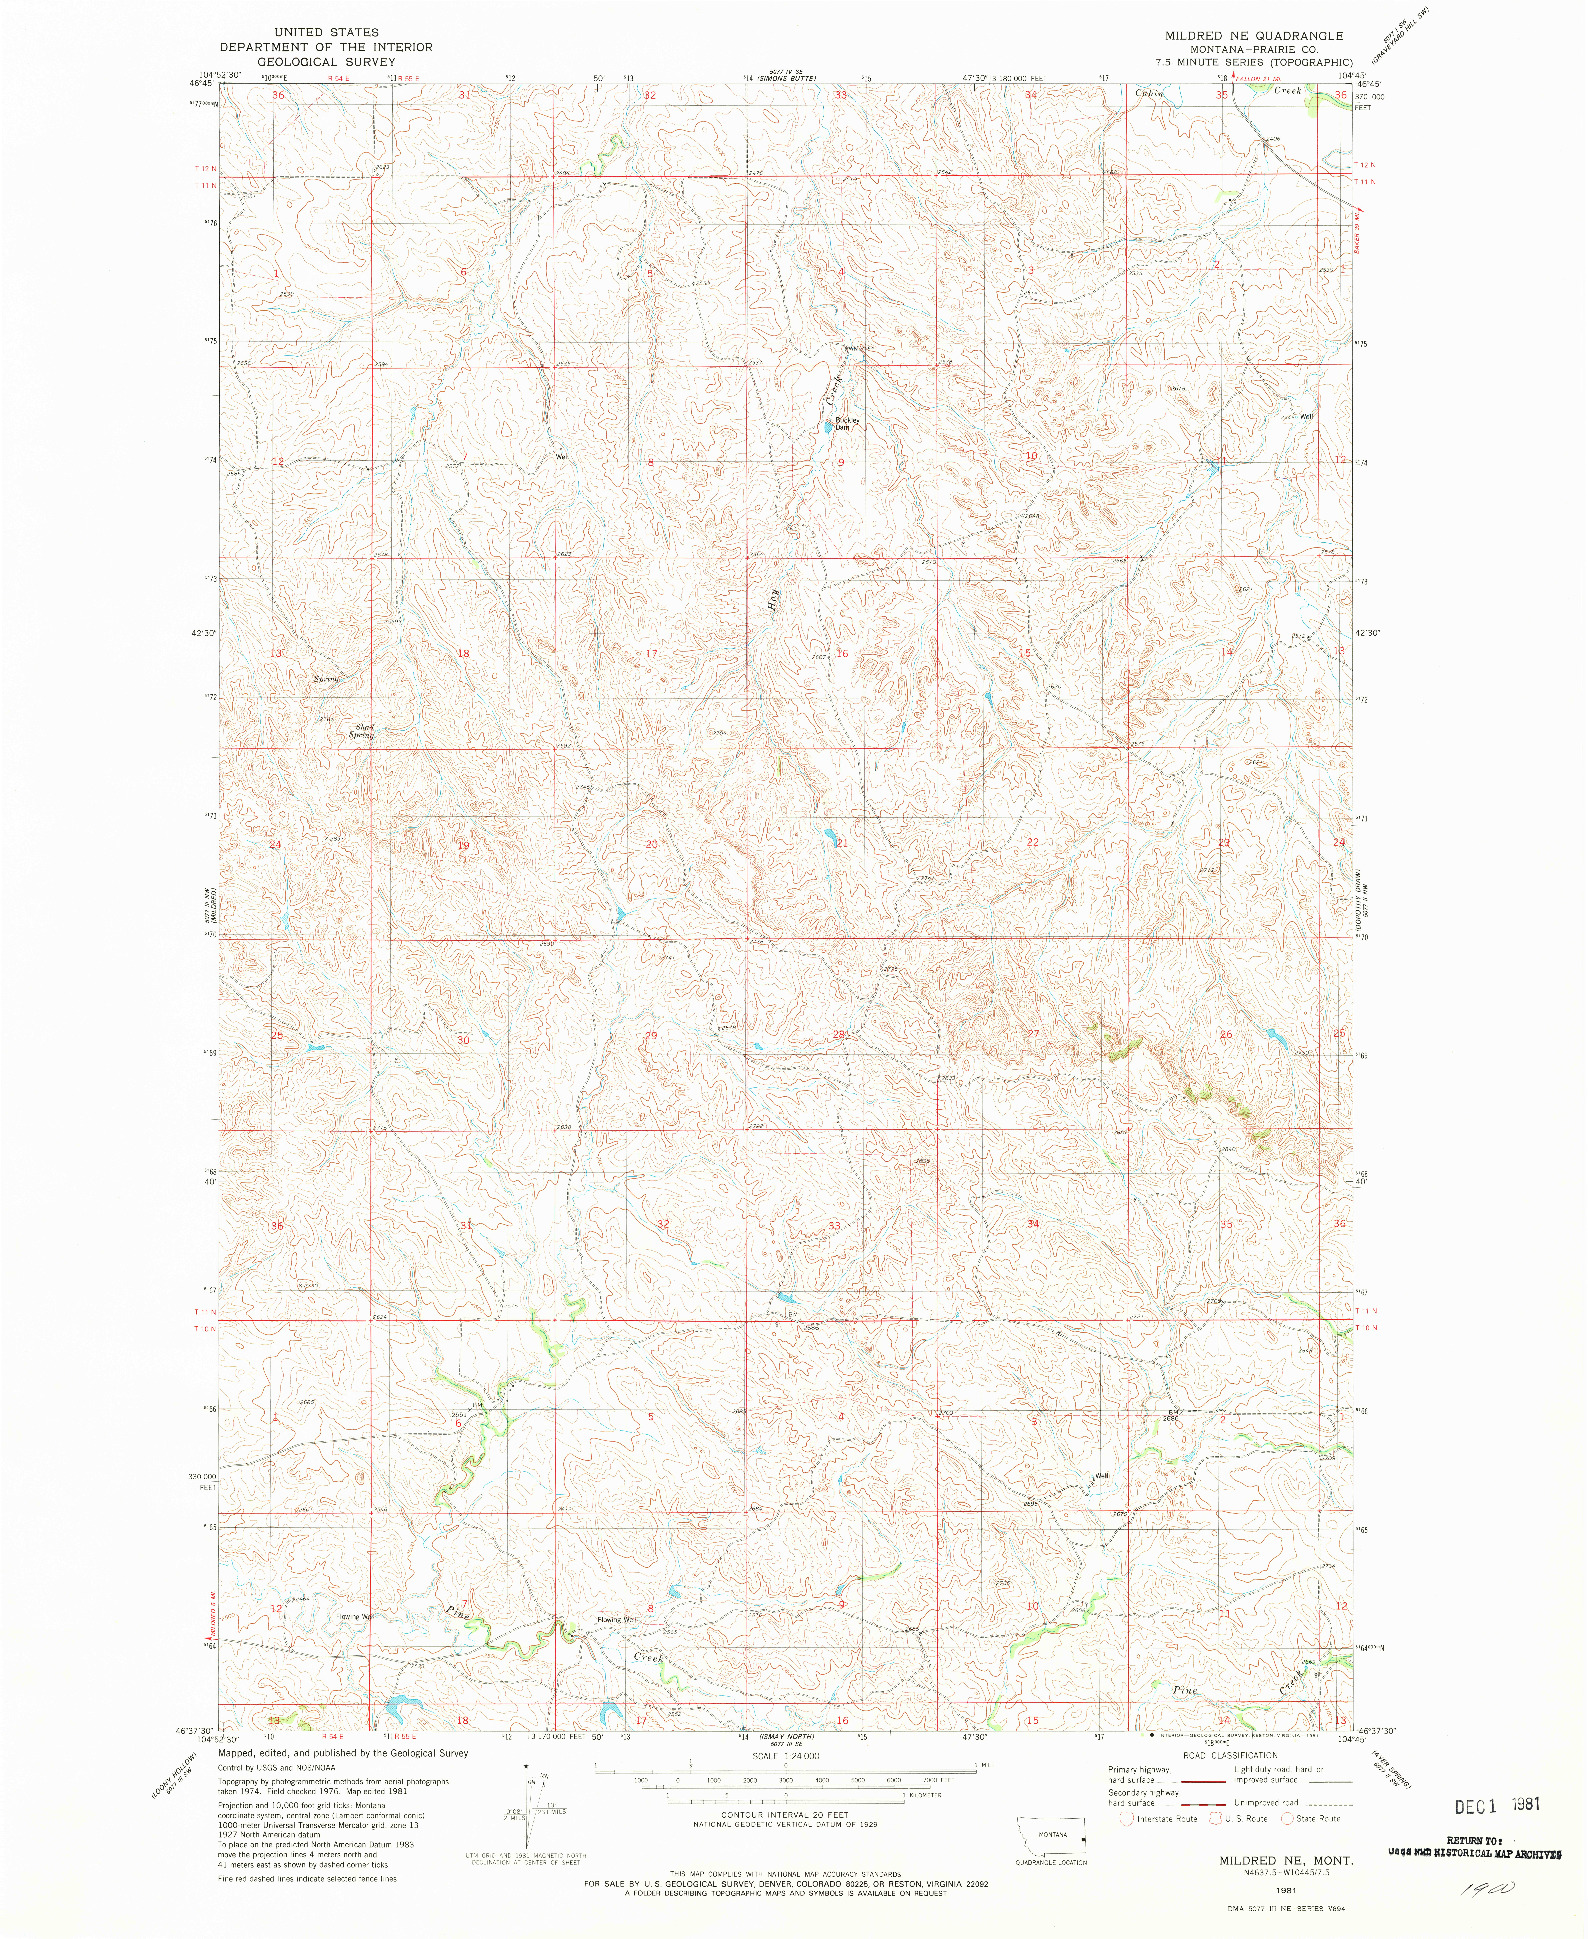 USGS 1:24000-SCALE QUADRANGLE FOR MILDRED NE, MT 1981